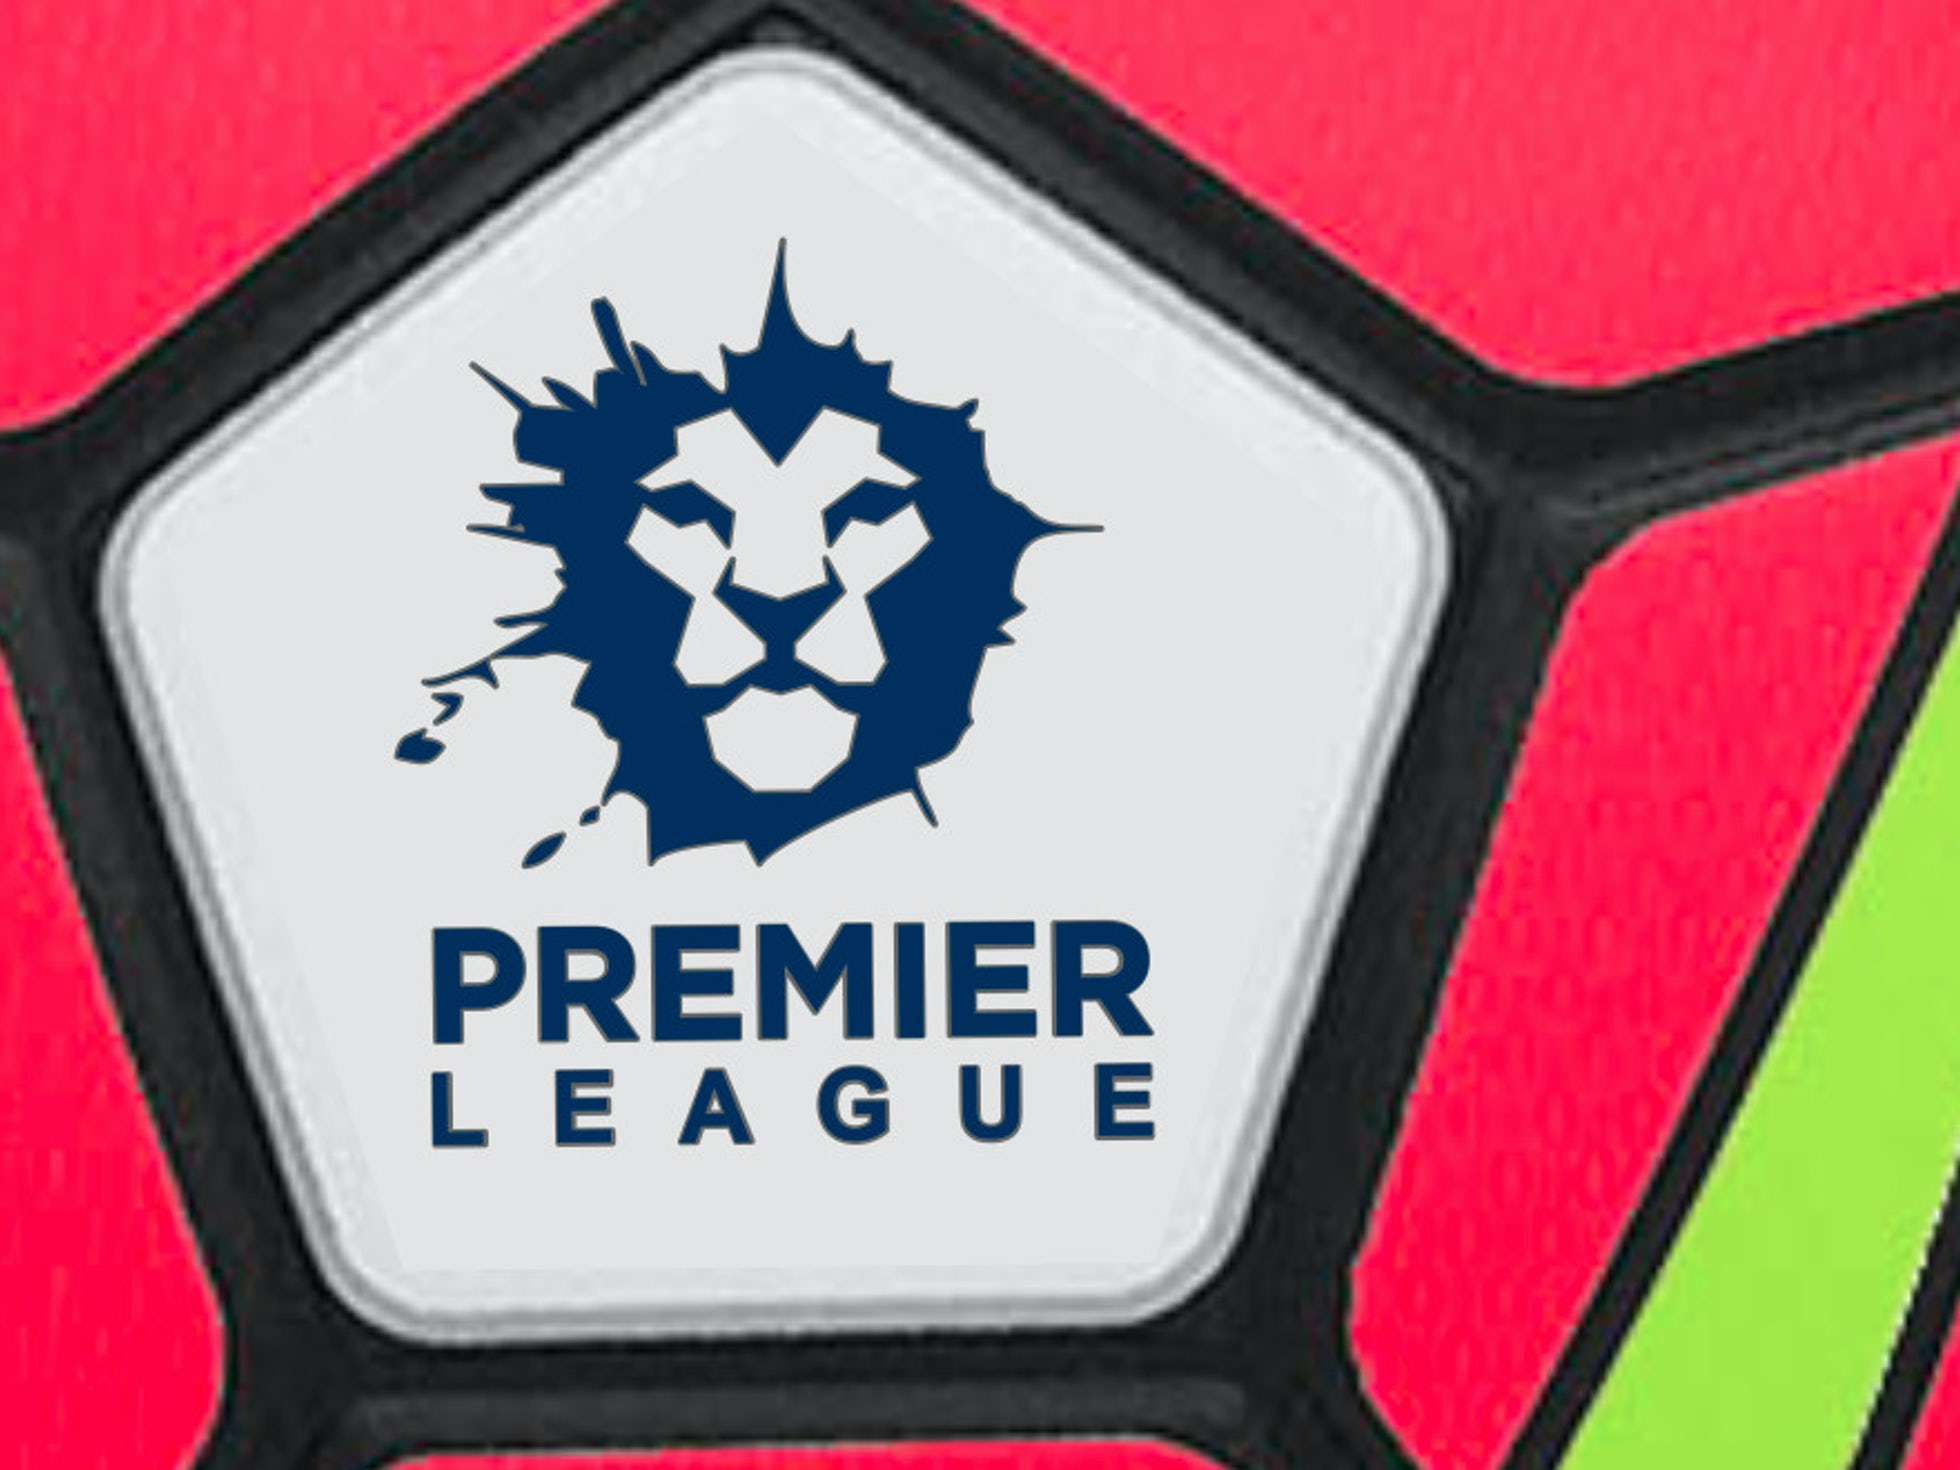 Branding Mistakes Made By The Premier League Logo 99designs